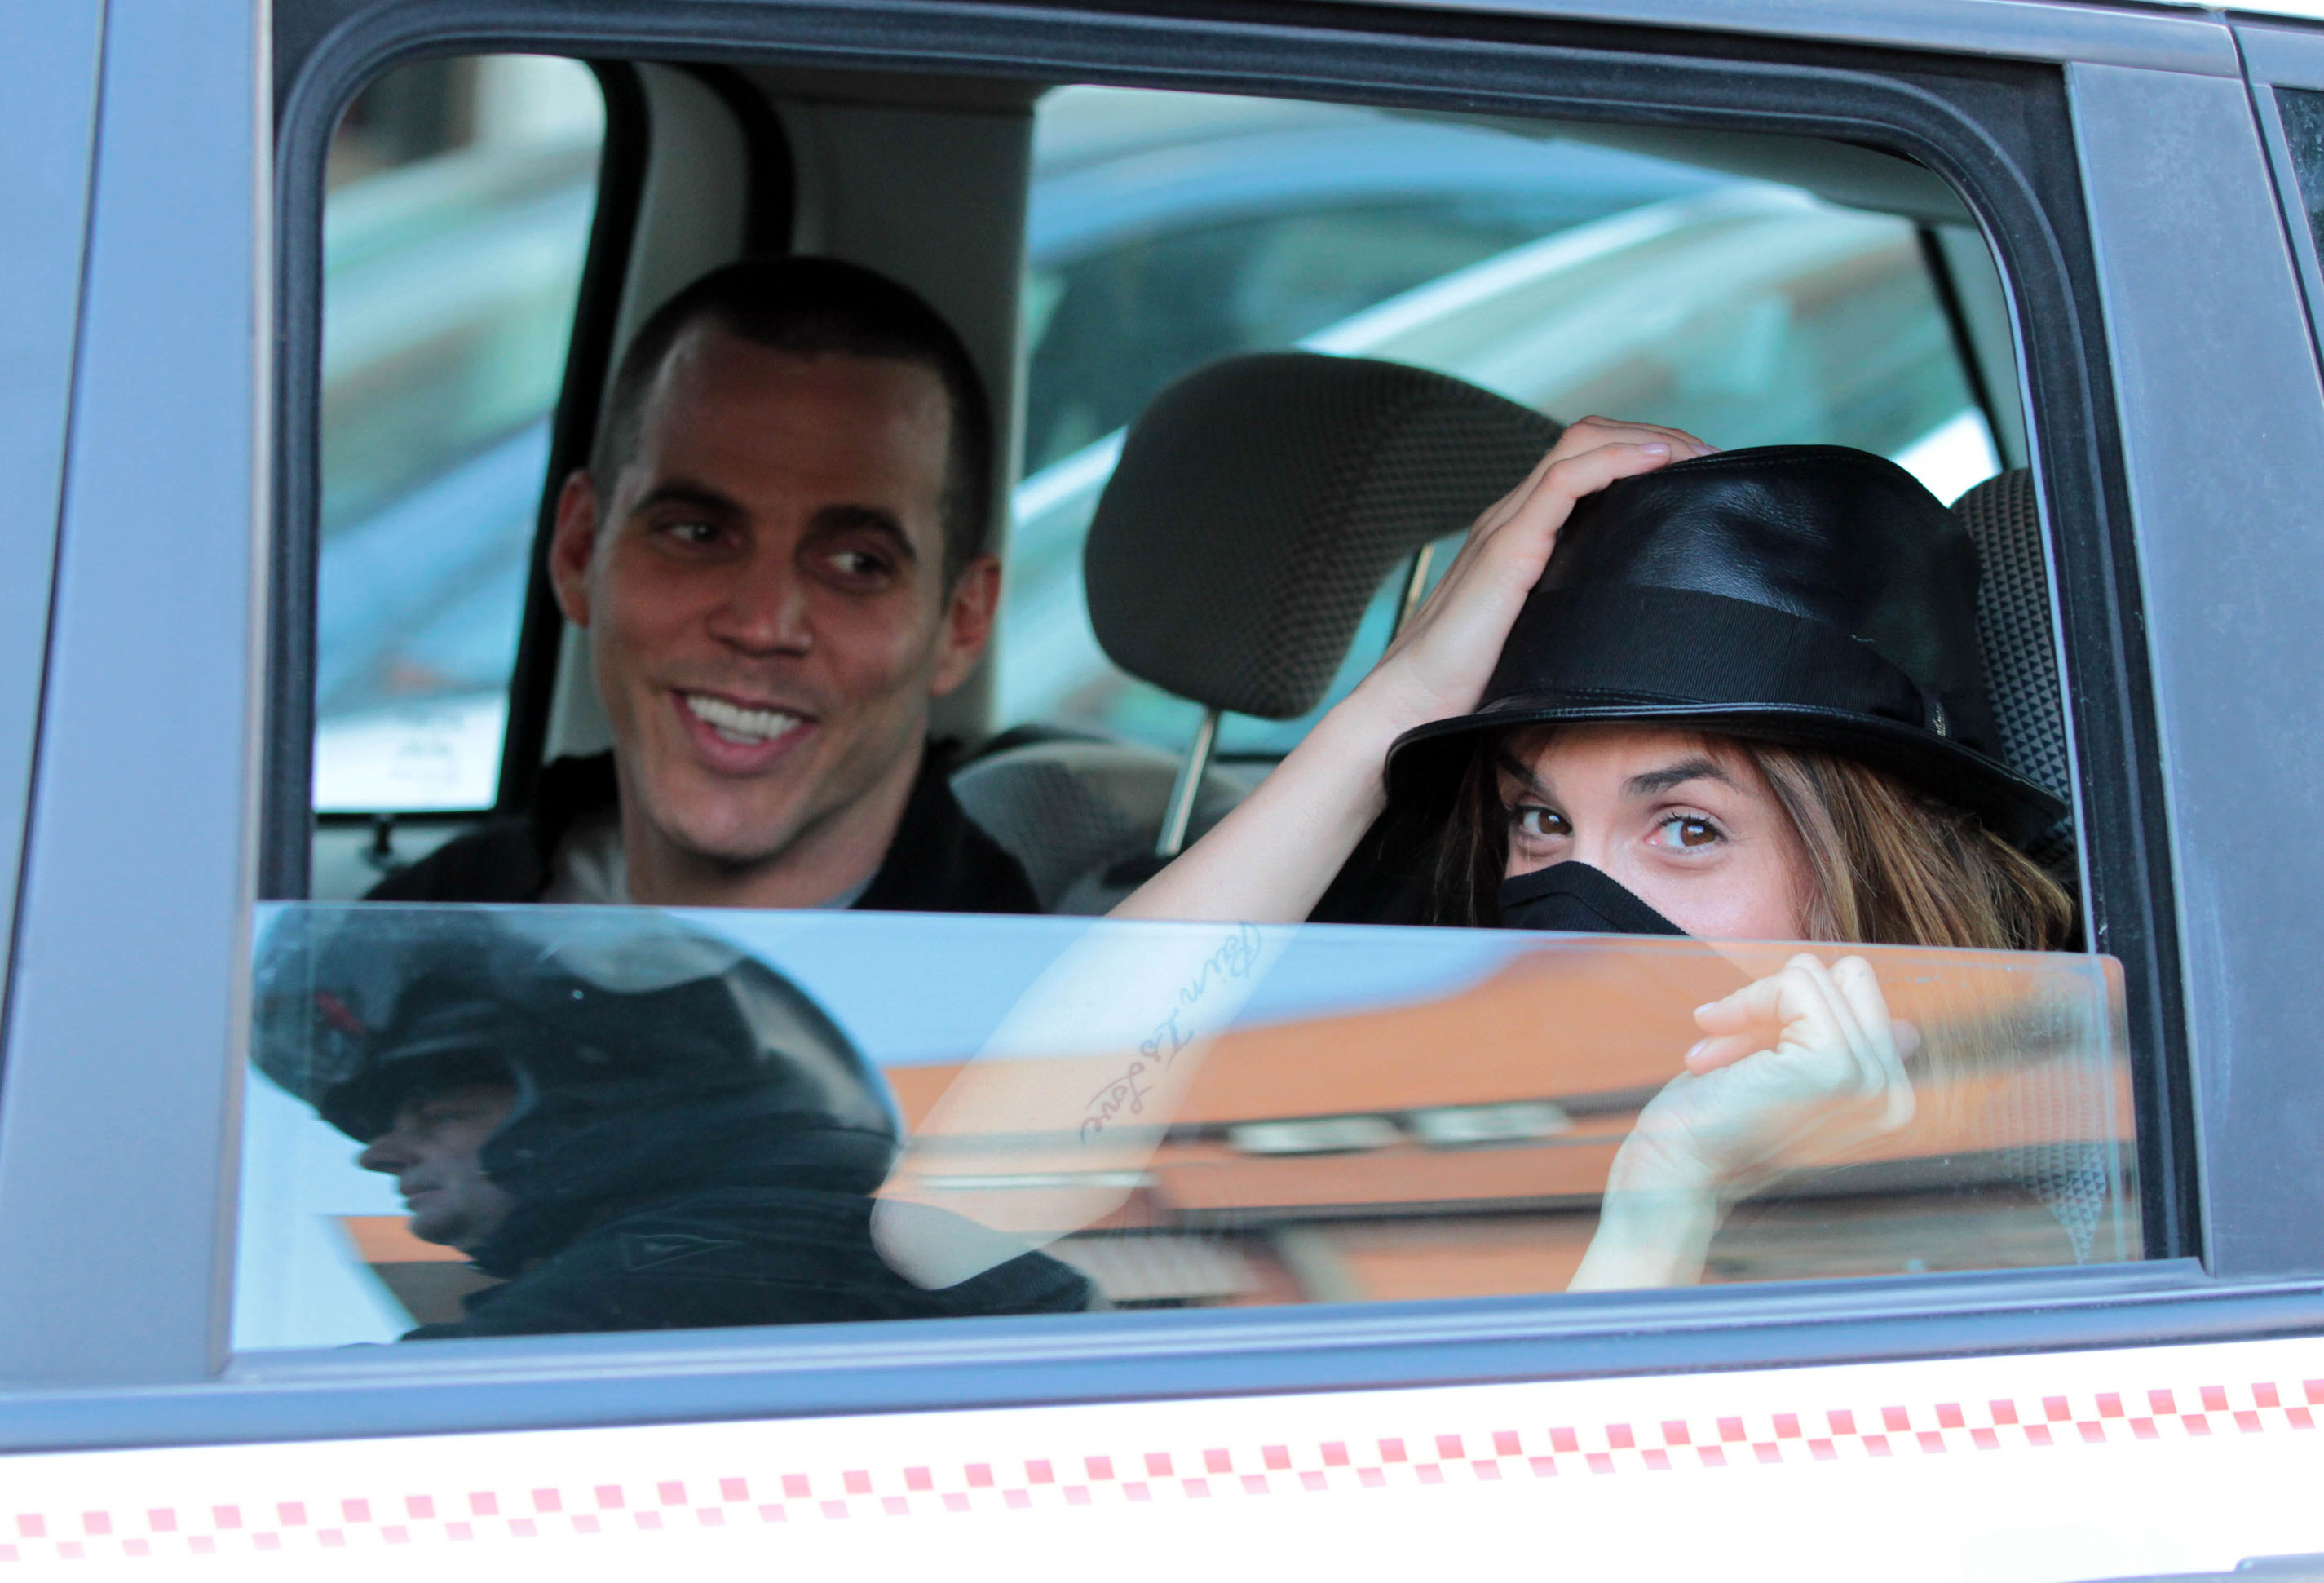 Steve-O Dumps Elisabetta Canalis, He Didn't want Her Lifestyle to Bring Him Down!